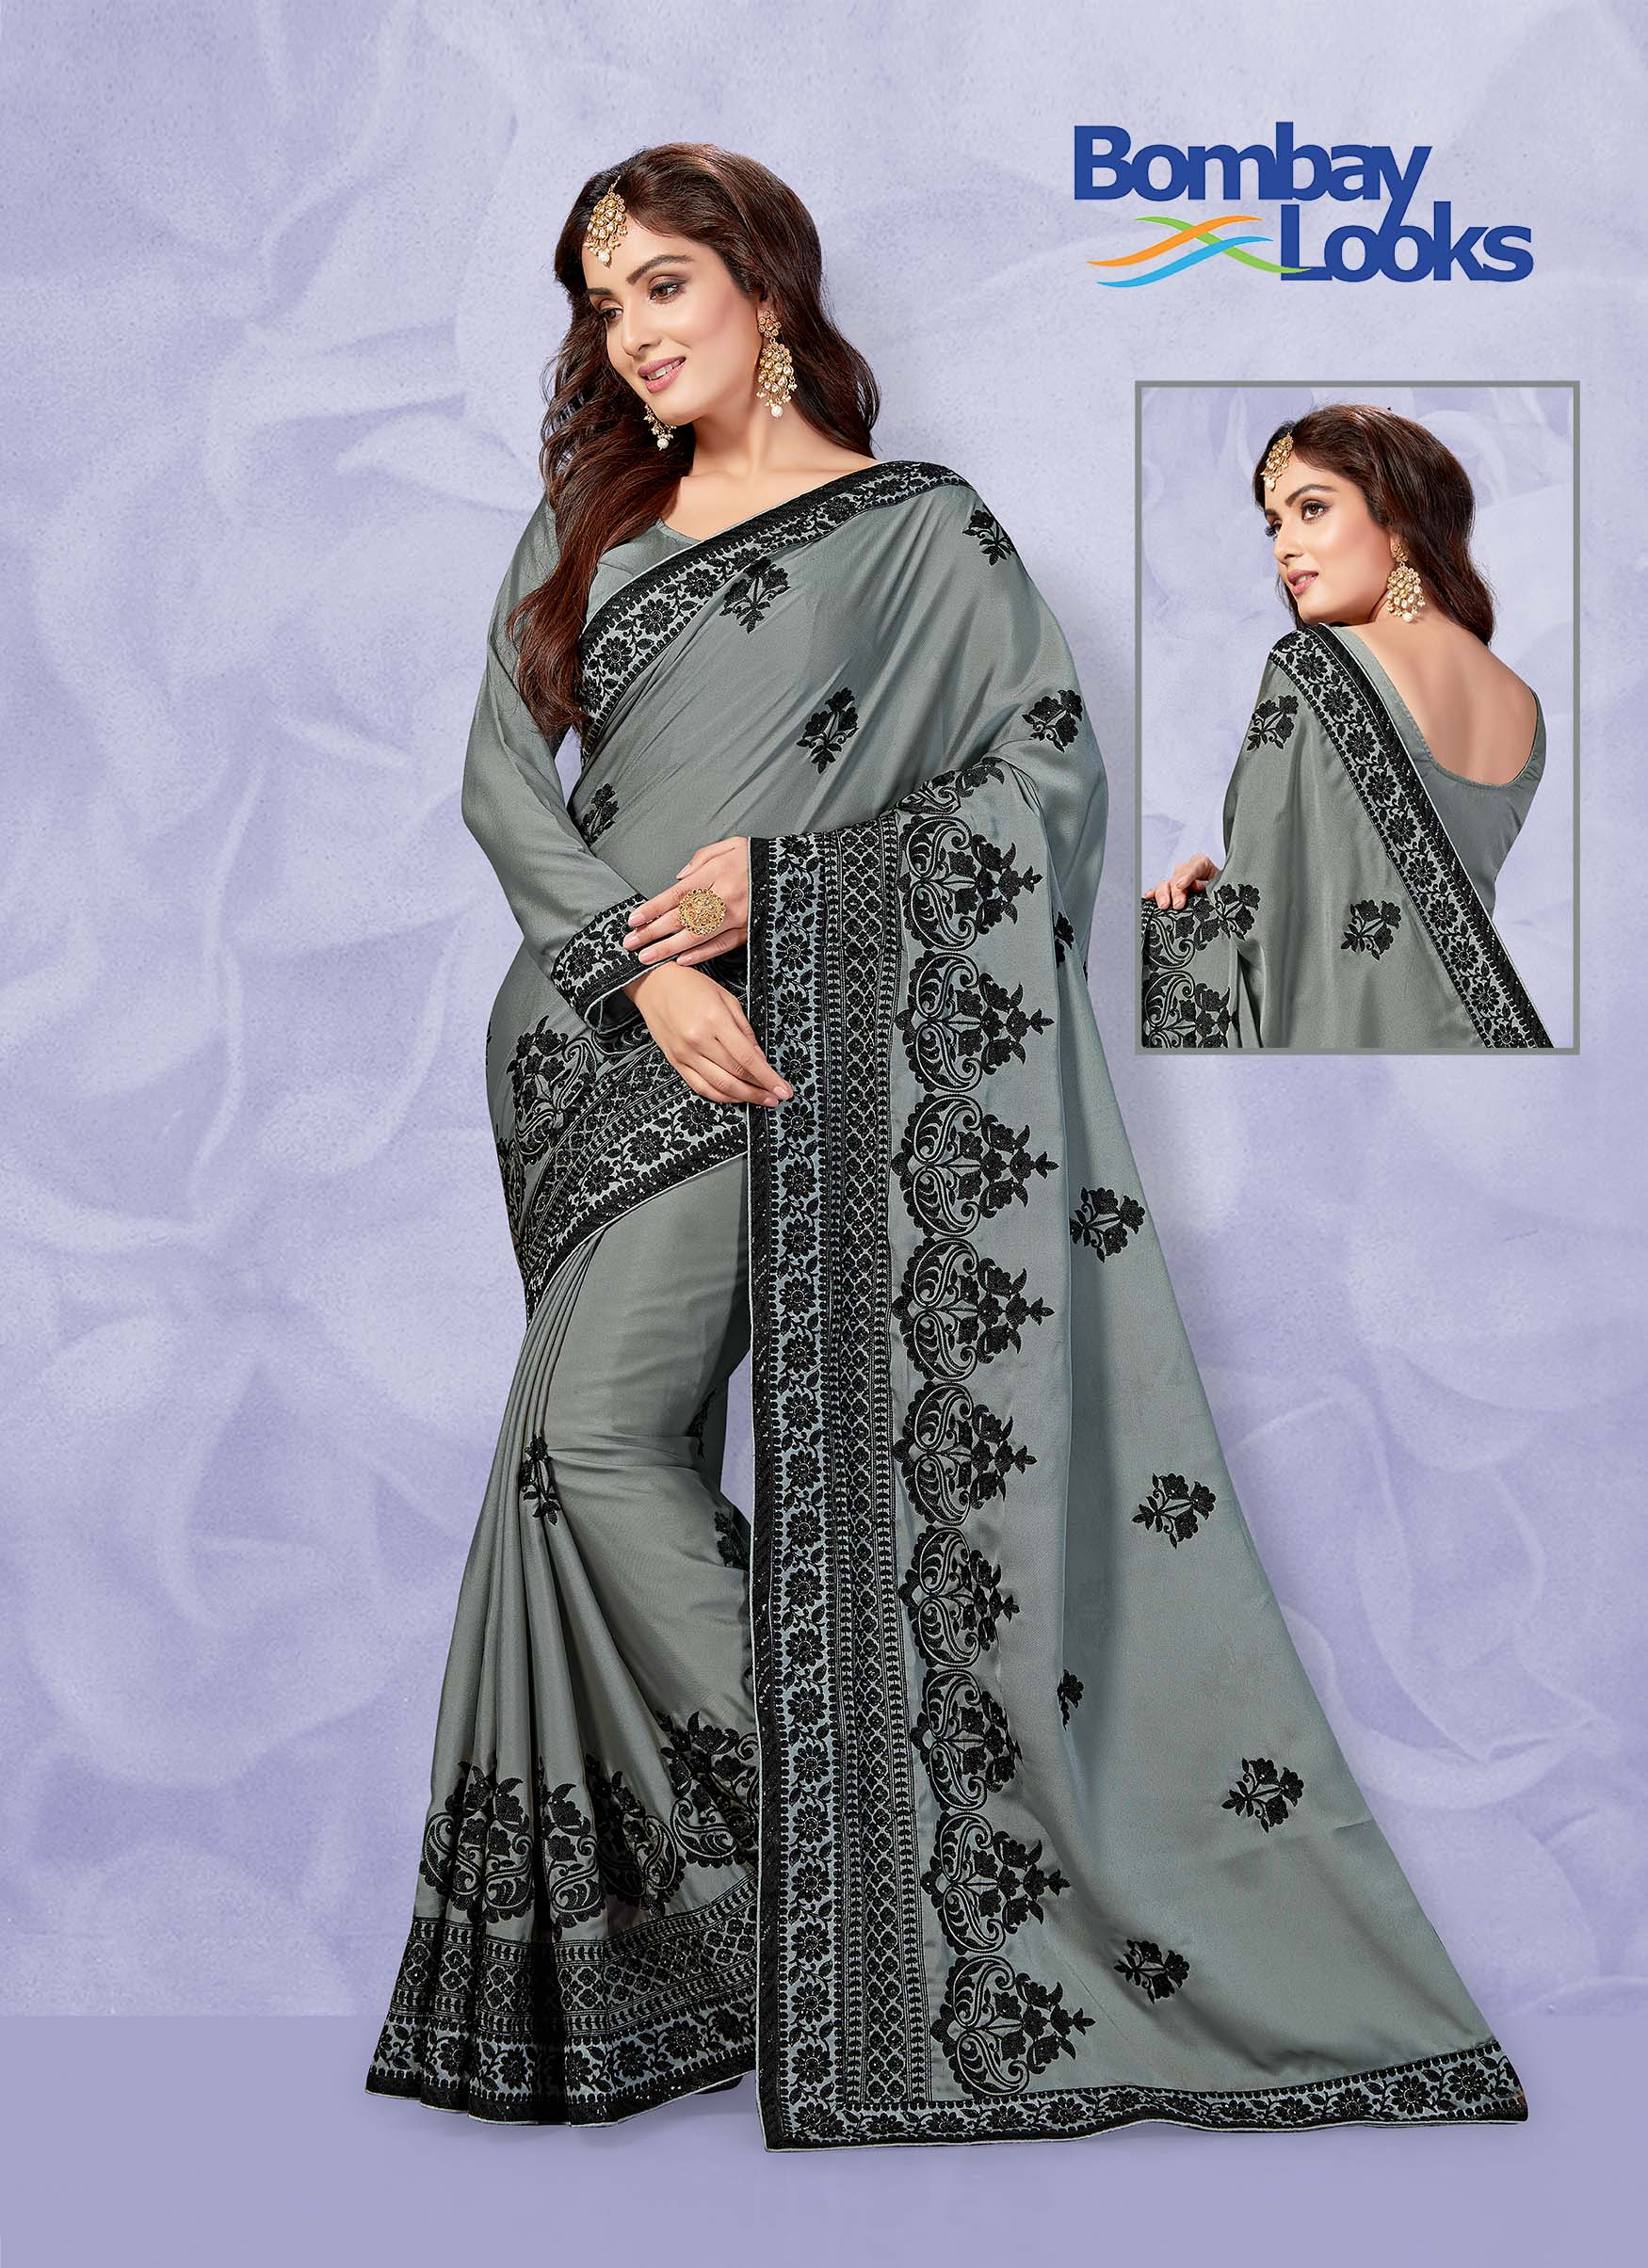 Grey Rangoli saree with heavy black thread embroidery